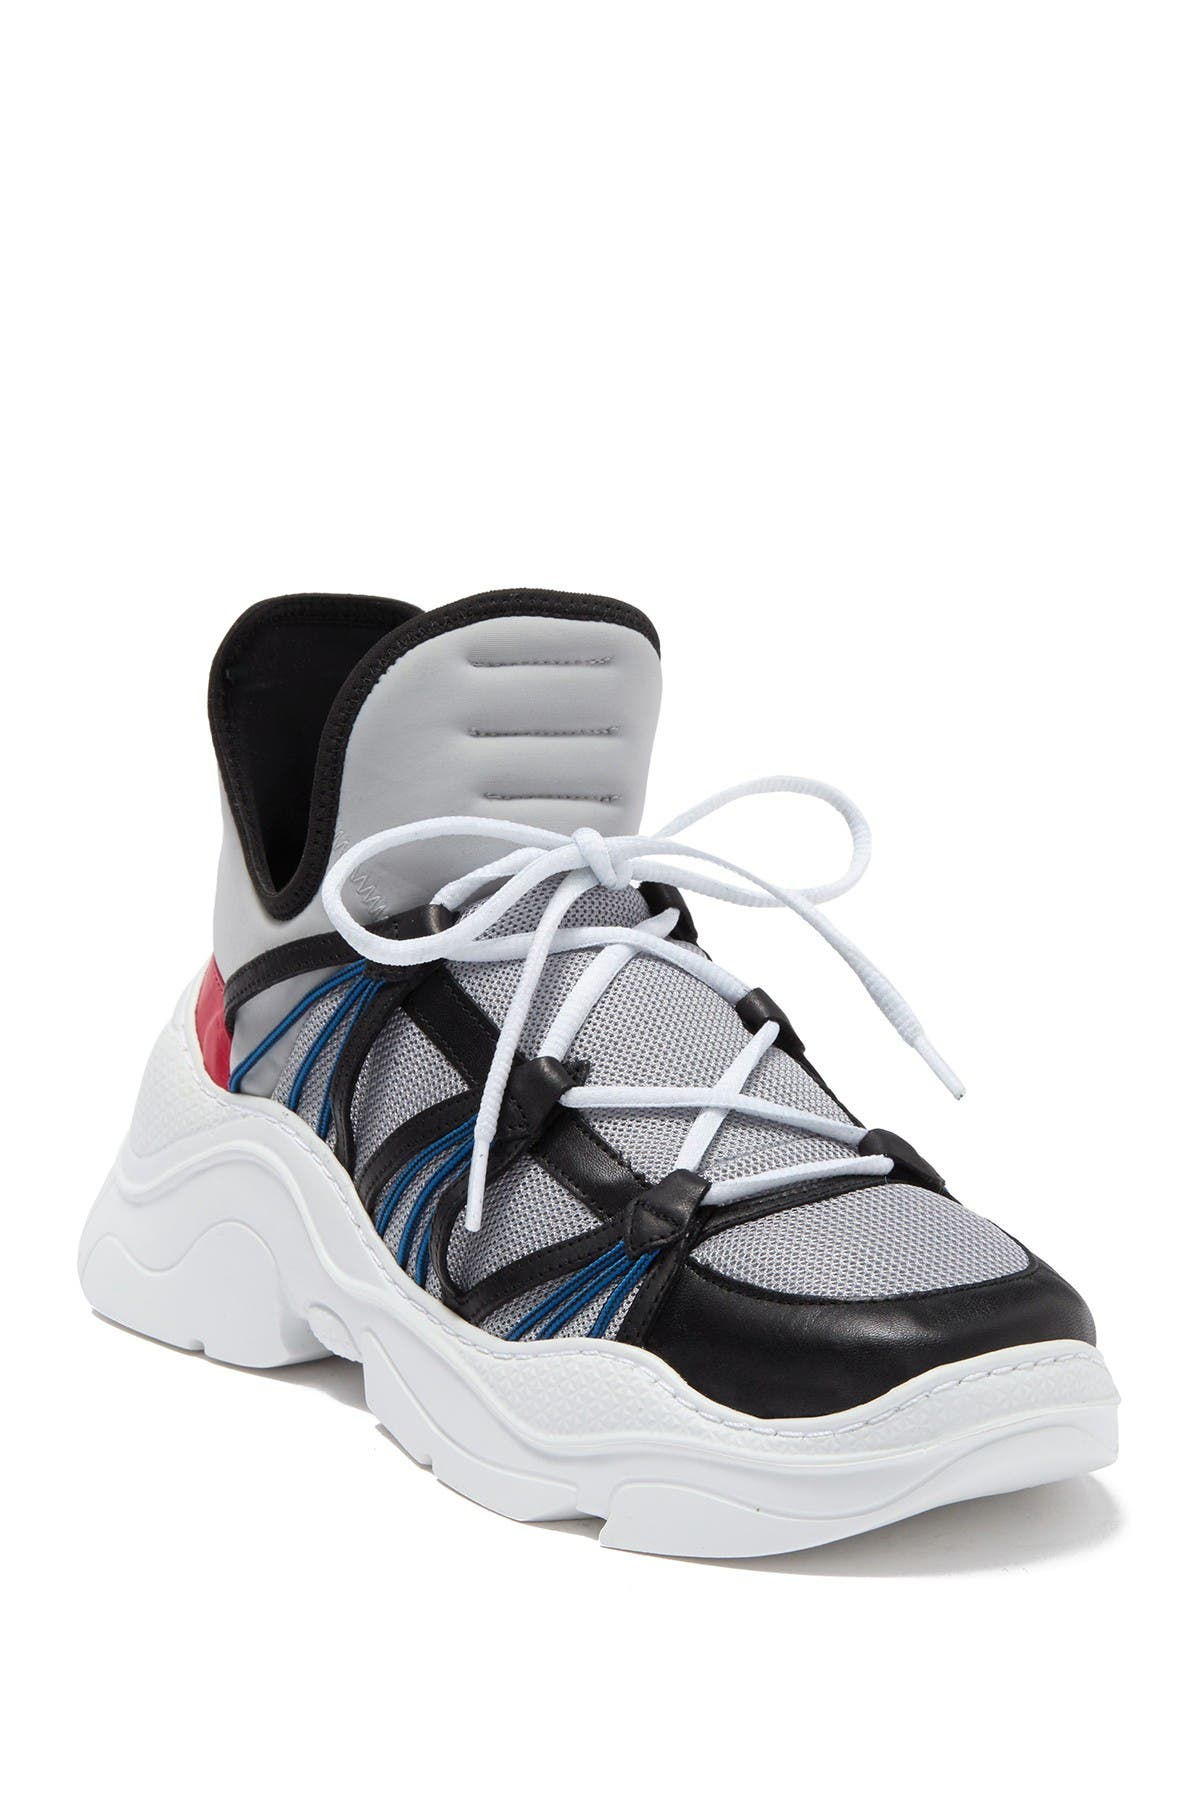 Image of Schutz Anick Lace-Up Sneaker